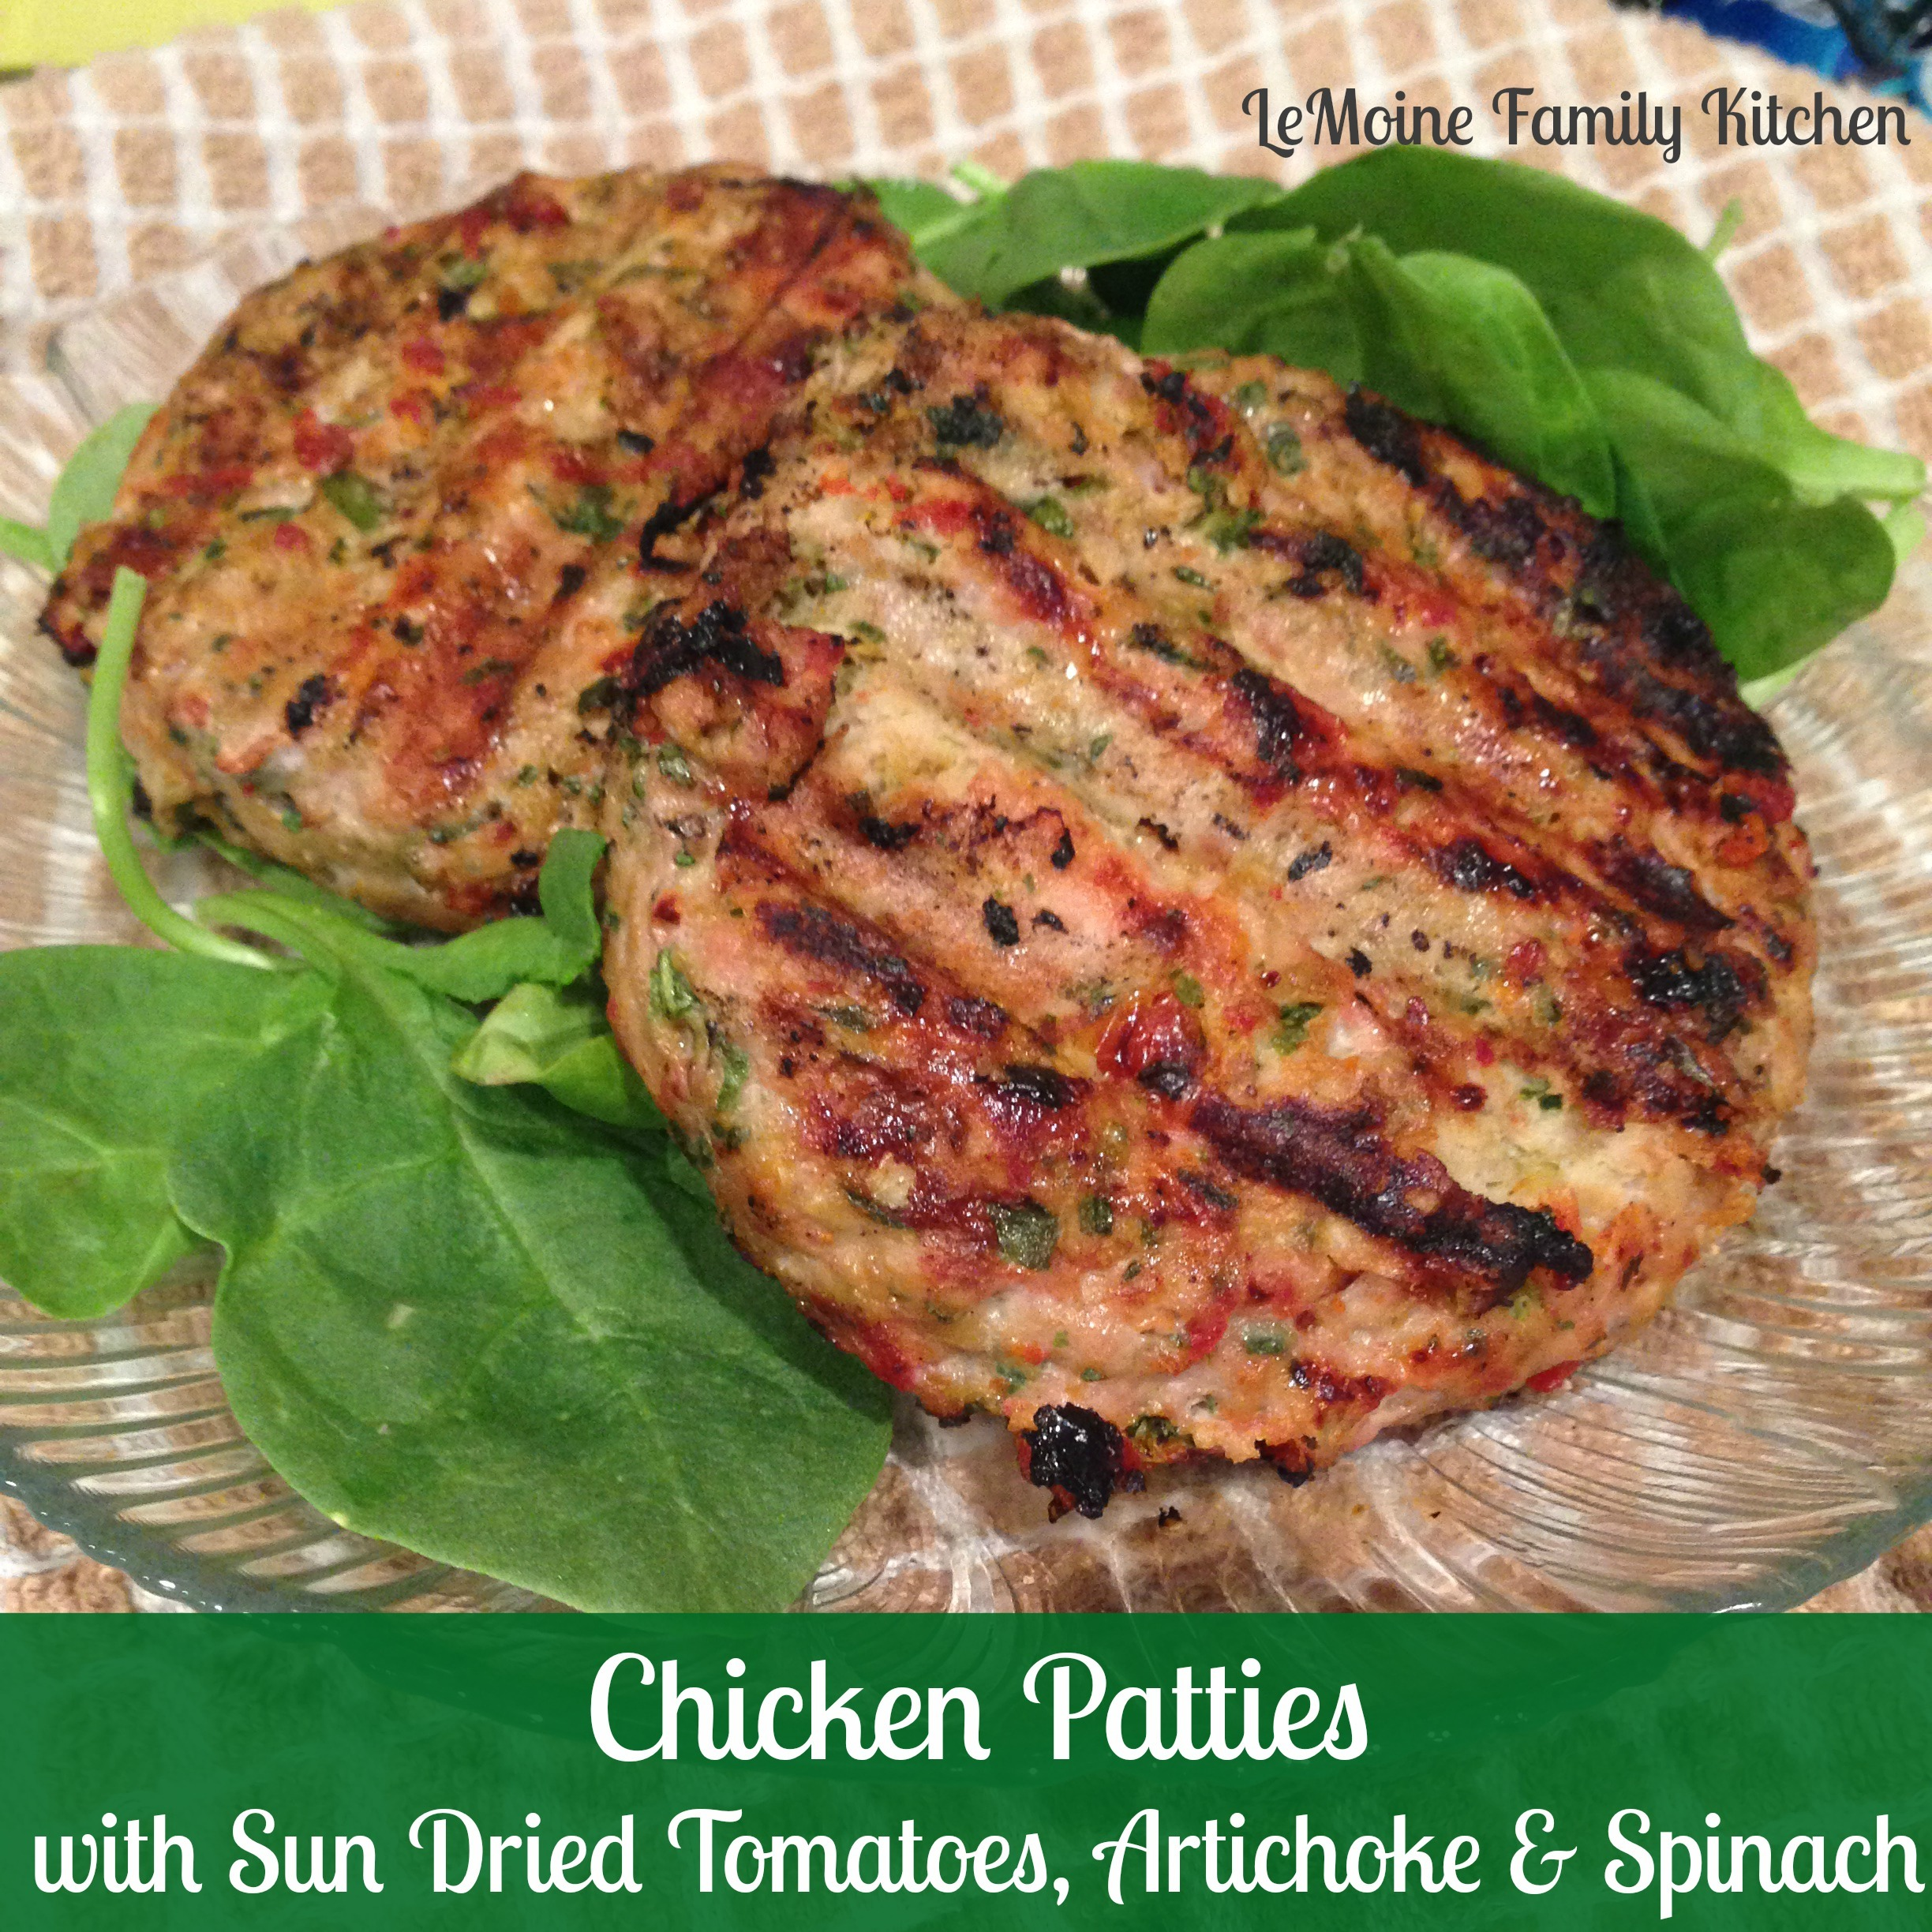 Chicken Patties with Sun Dried Tomatoes, Artichoke Hearts & Spinach